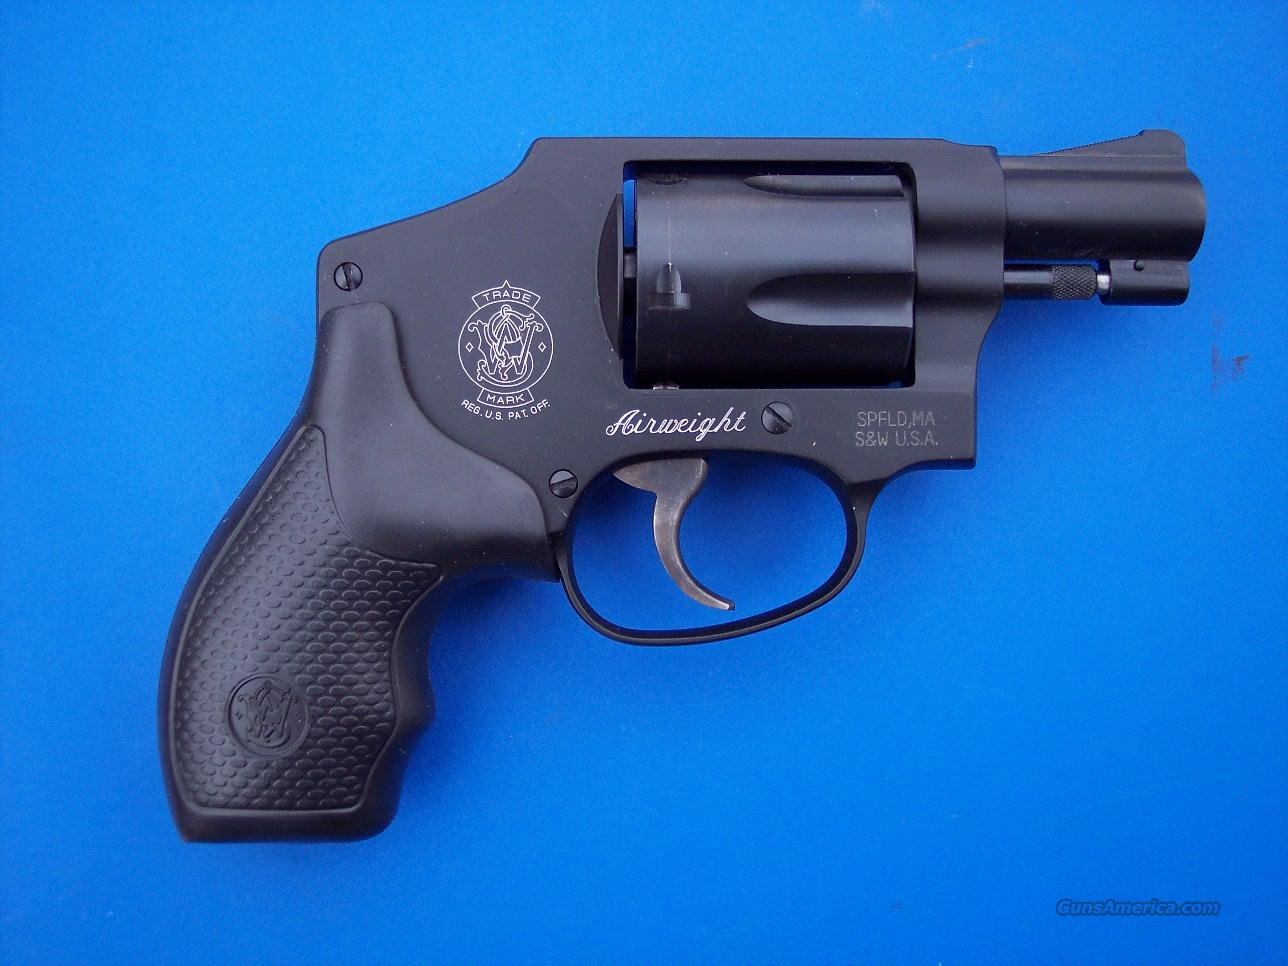 Smith & Wesson 442 No Lock Centennial Airweight 38 + P *NEW*  Guns > Pistols > Smith & Wesson Revolvers > Pocket Pistols